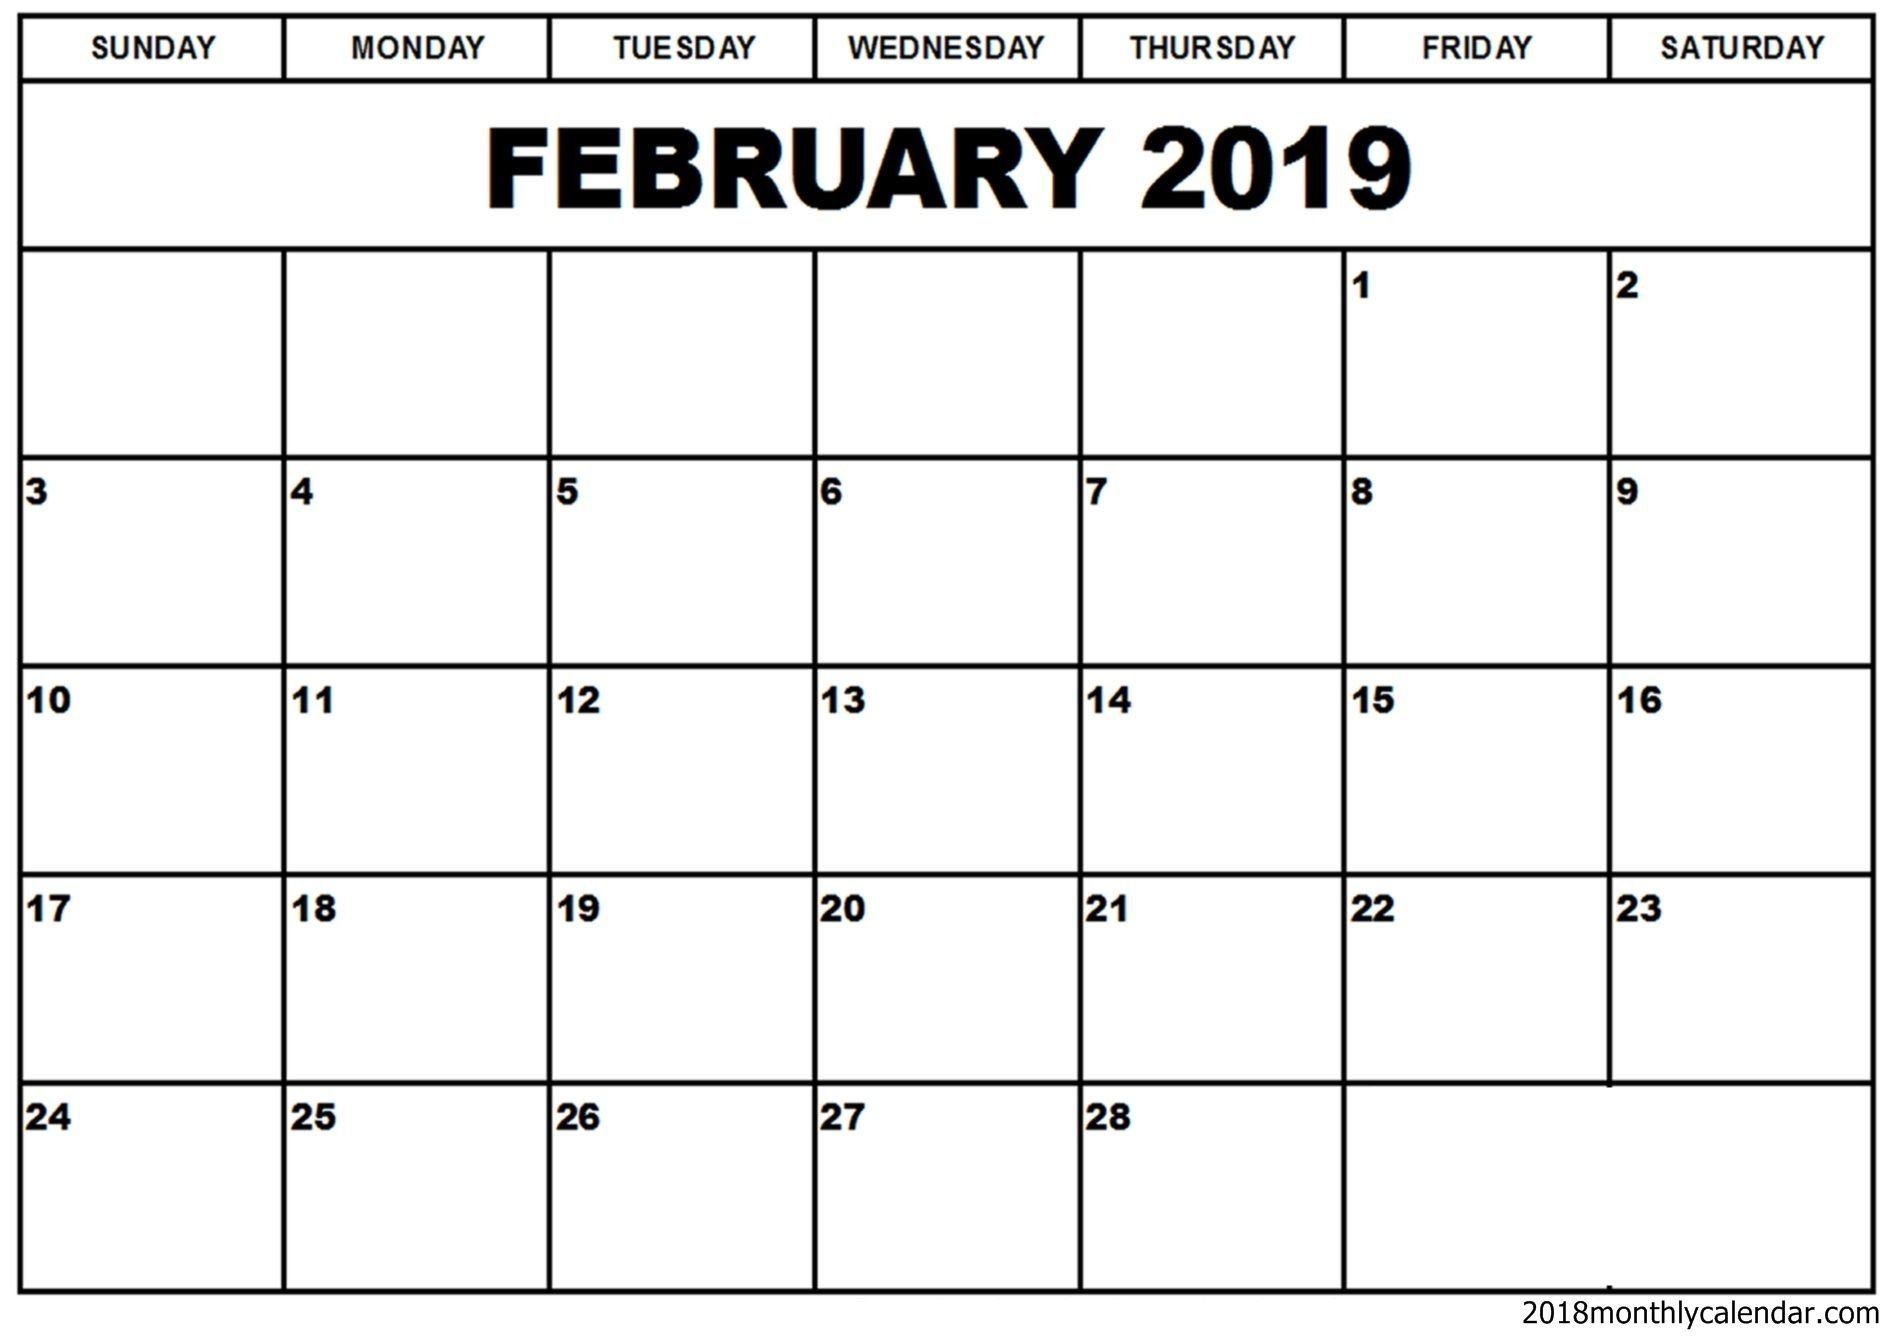 February 2019 Calendar Word Template | Free Printable Monthly Calendar 2019 Template Word